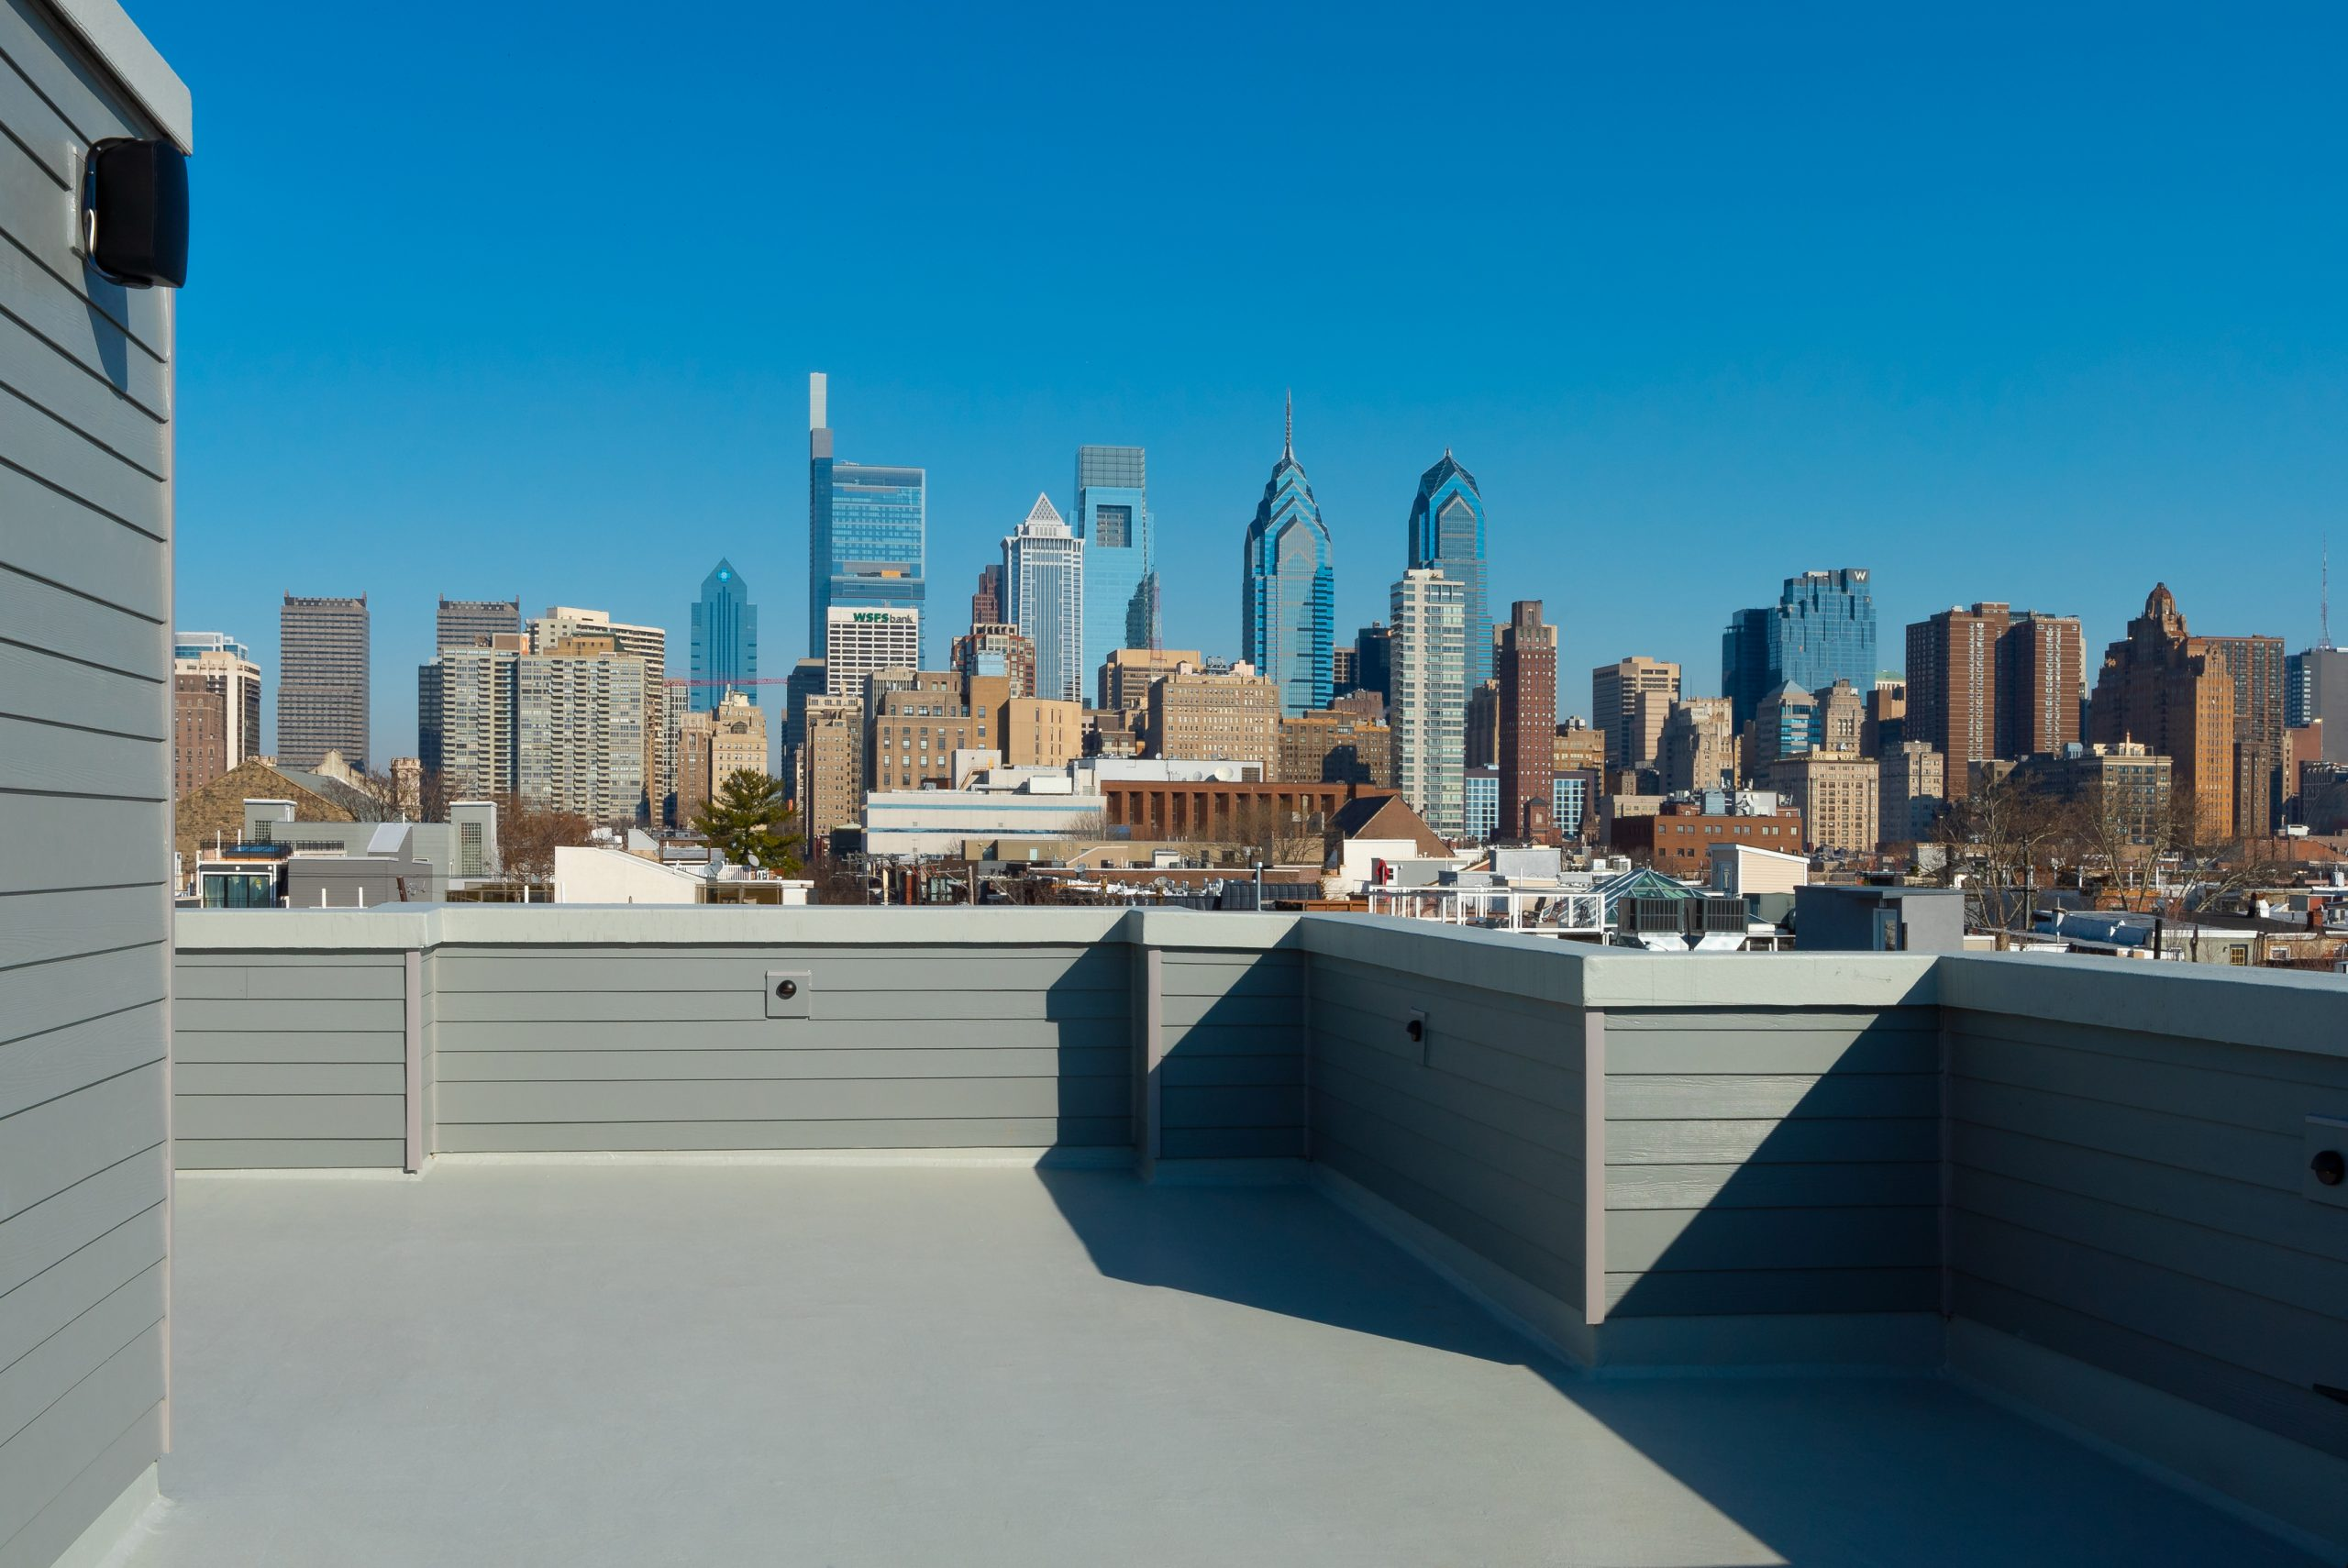 1900 CHRISTIAN UNIT 03 ROOF DECK WEFILMPHILLY-00406